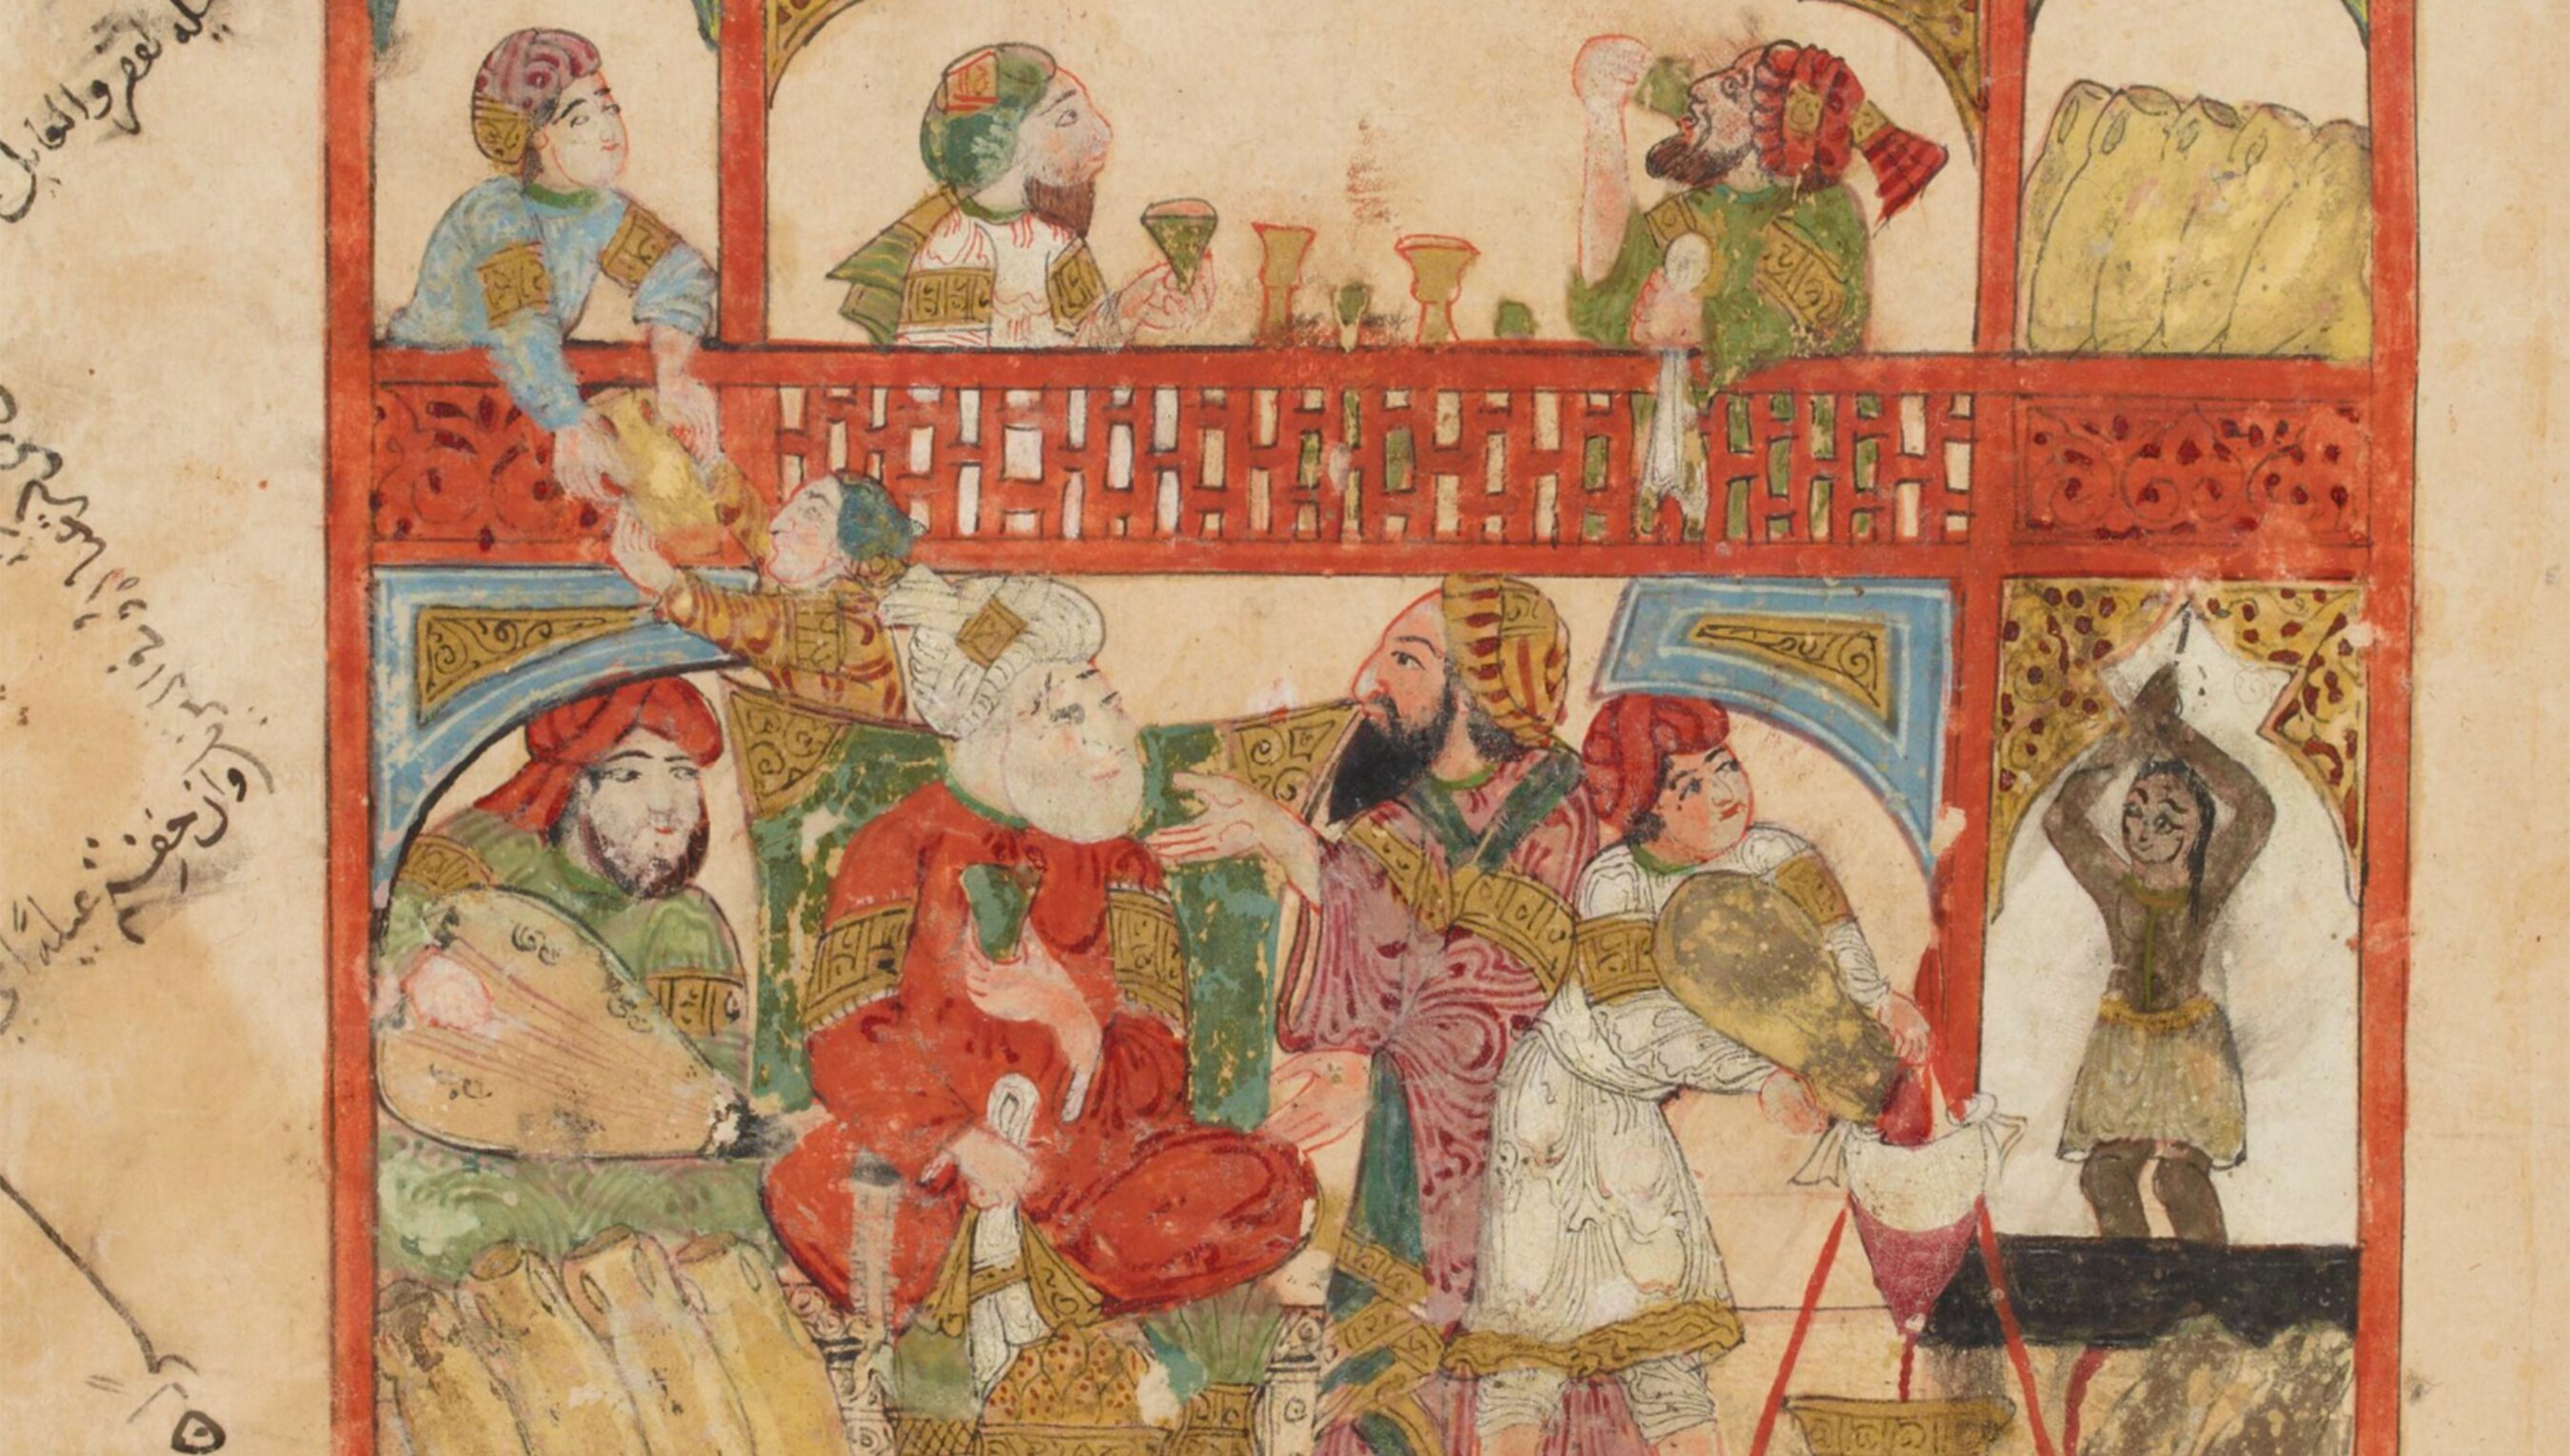 Party-crashing was a serious business in medieval Arabic tales | Psyche